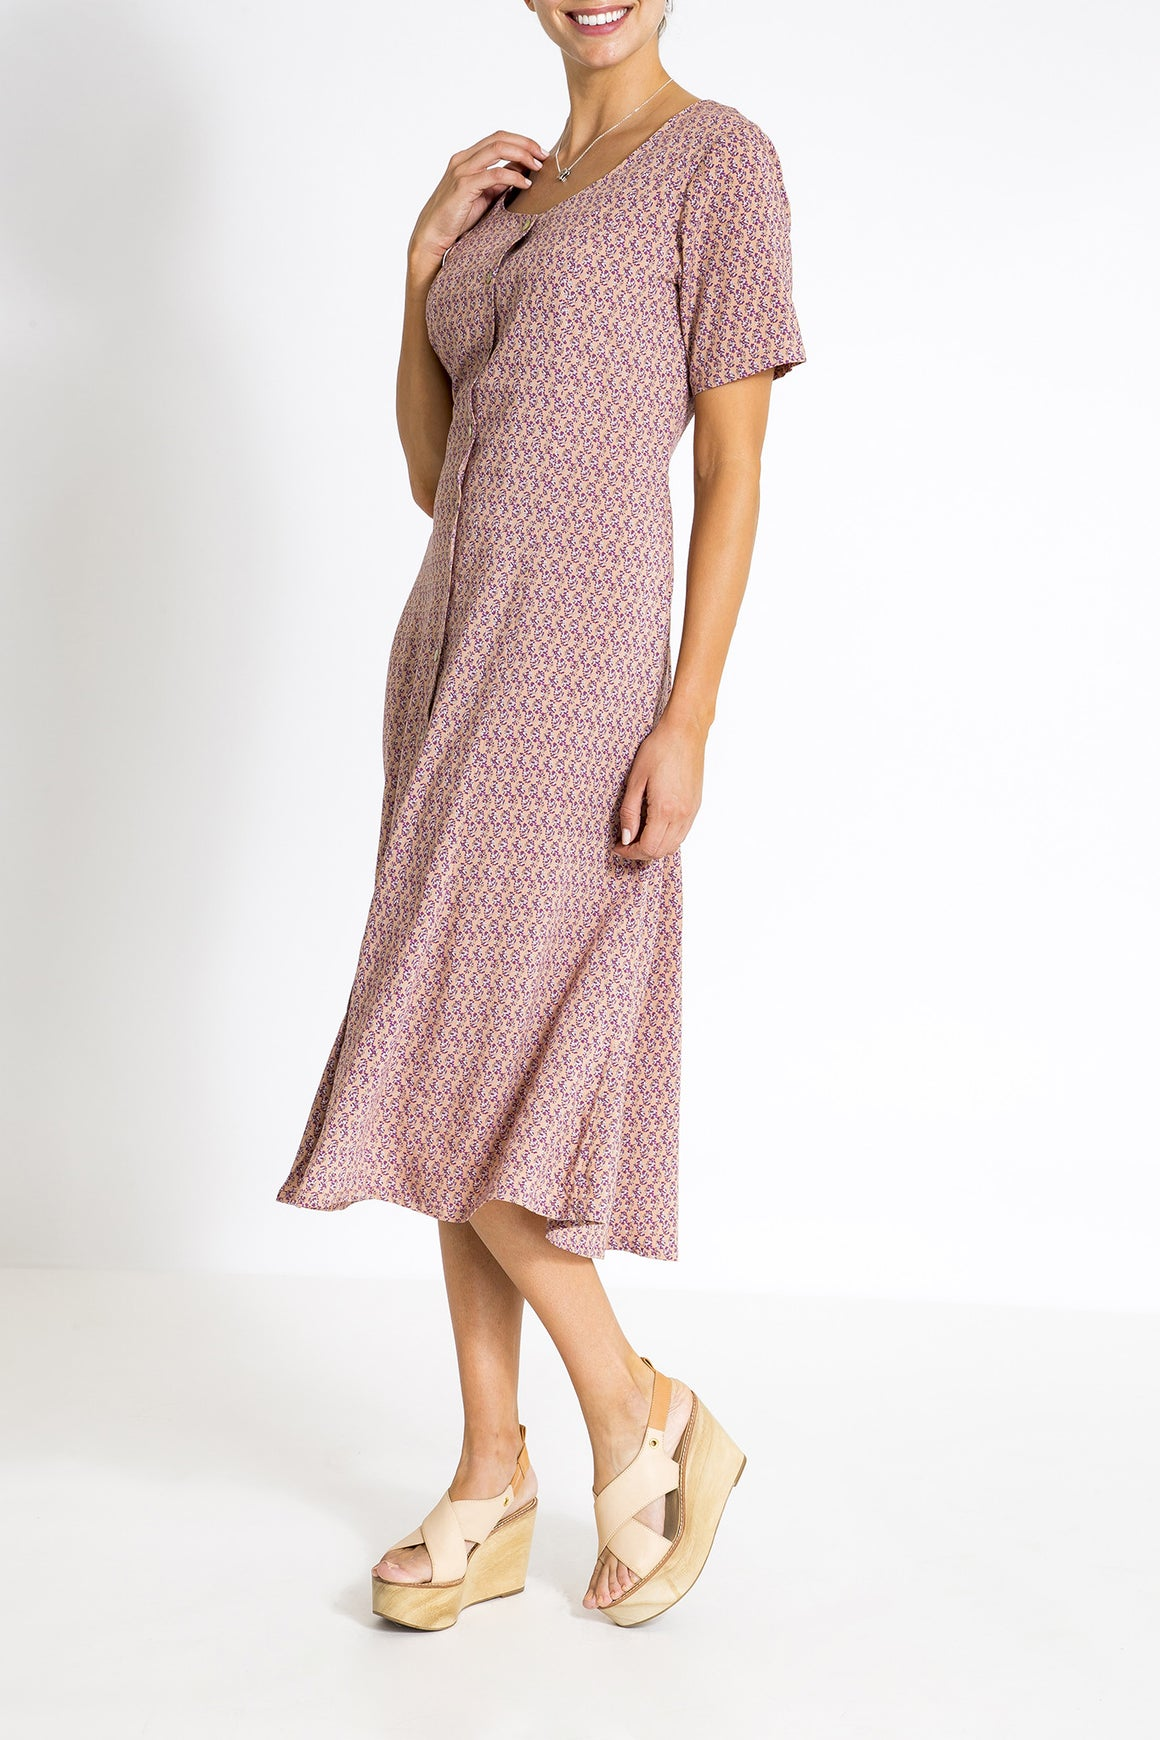 Summer Days Dress - Spring Pink